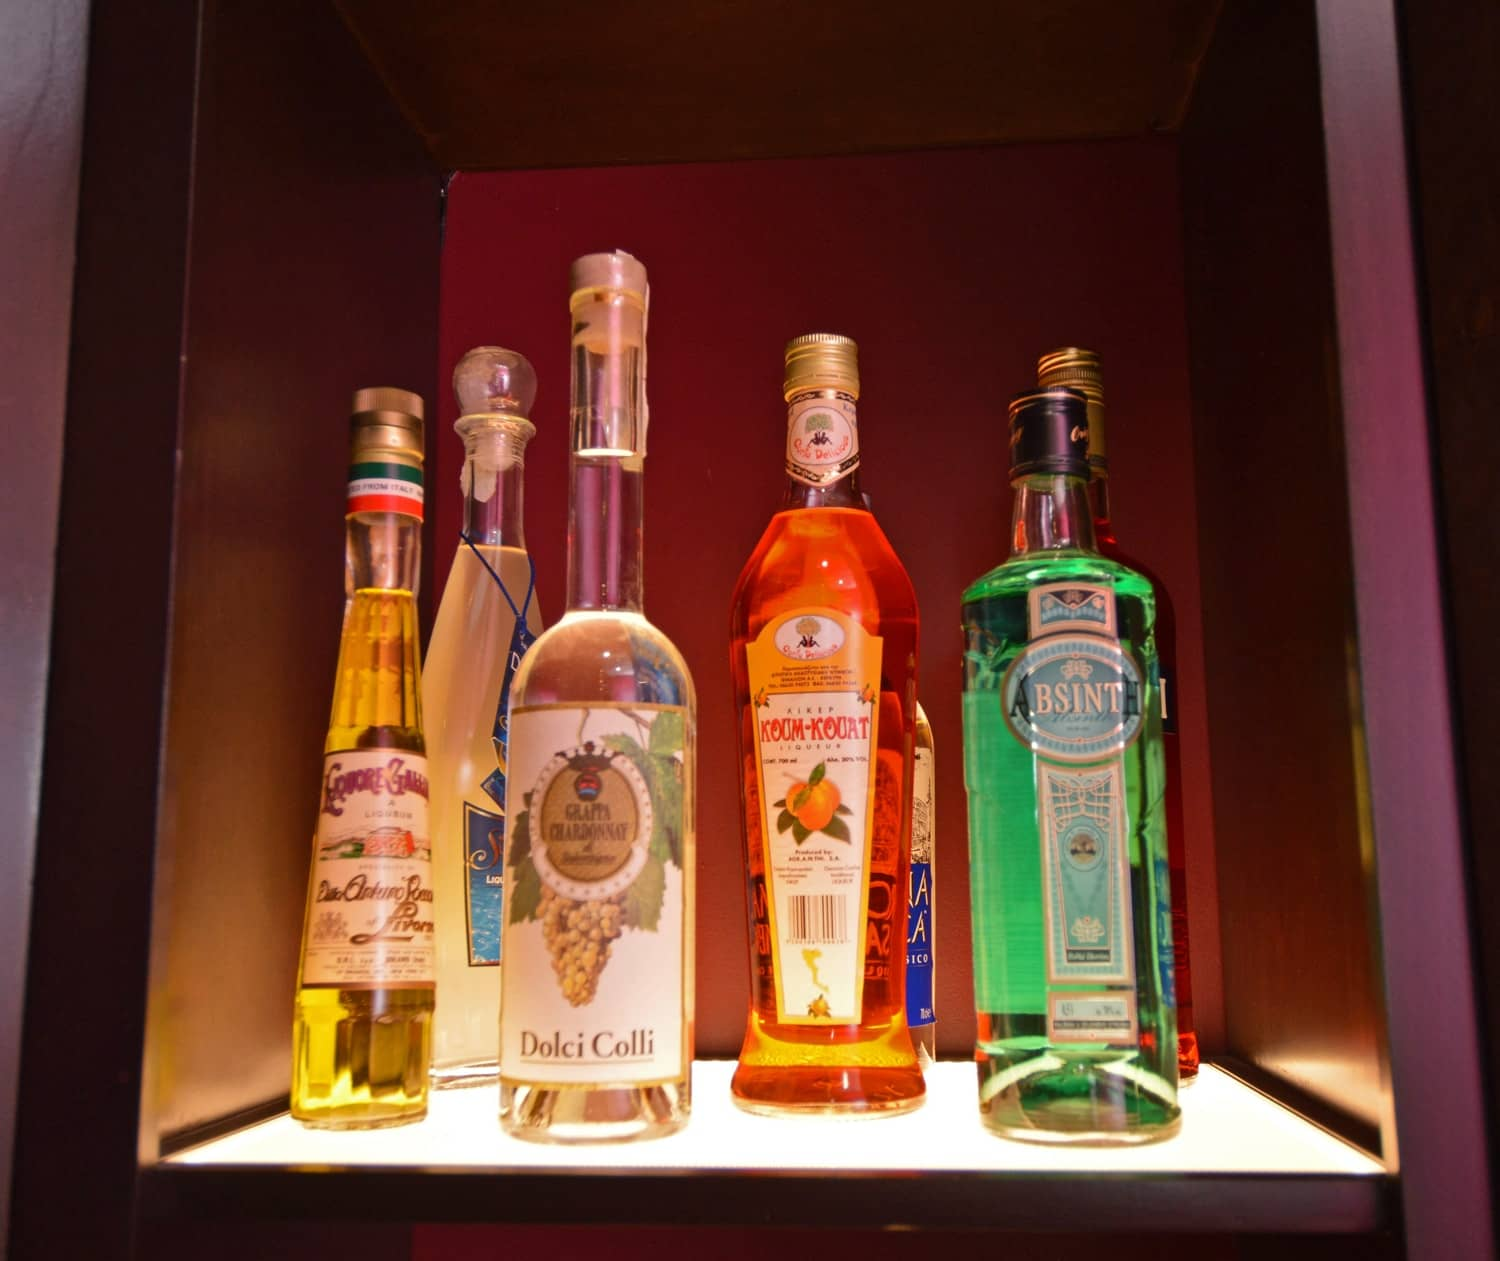 Lighting underneath the liquor shelf adds more emphasis to spirits placed there.